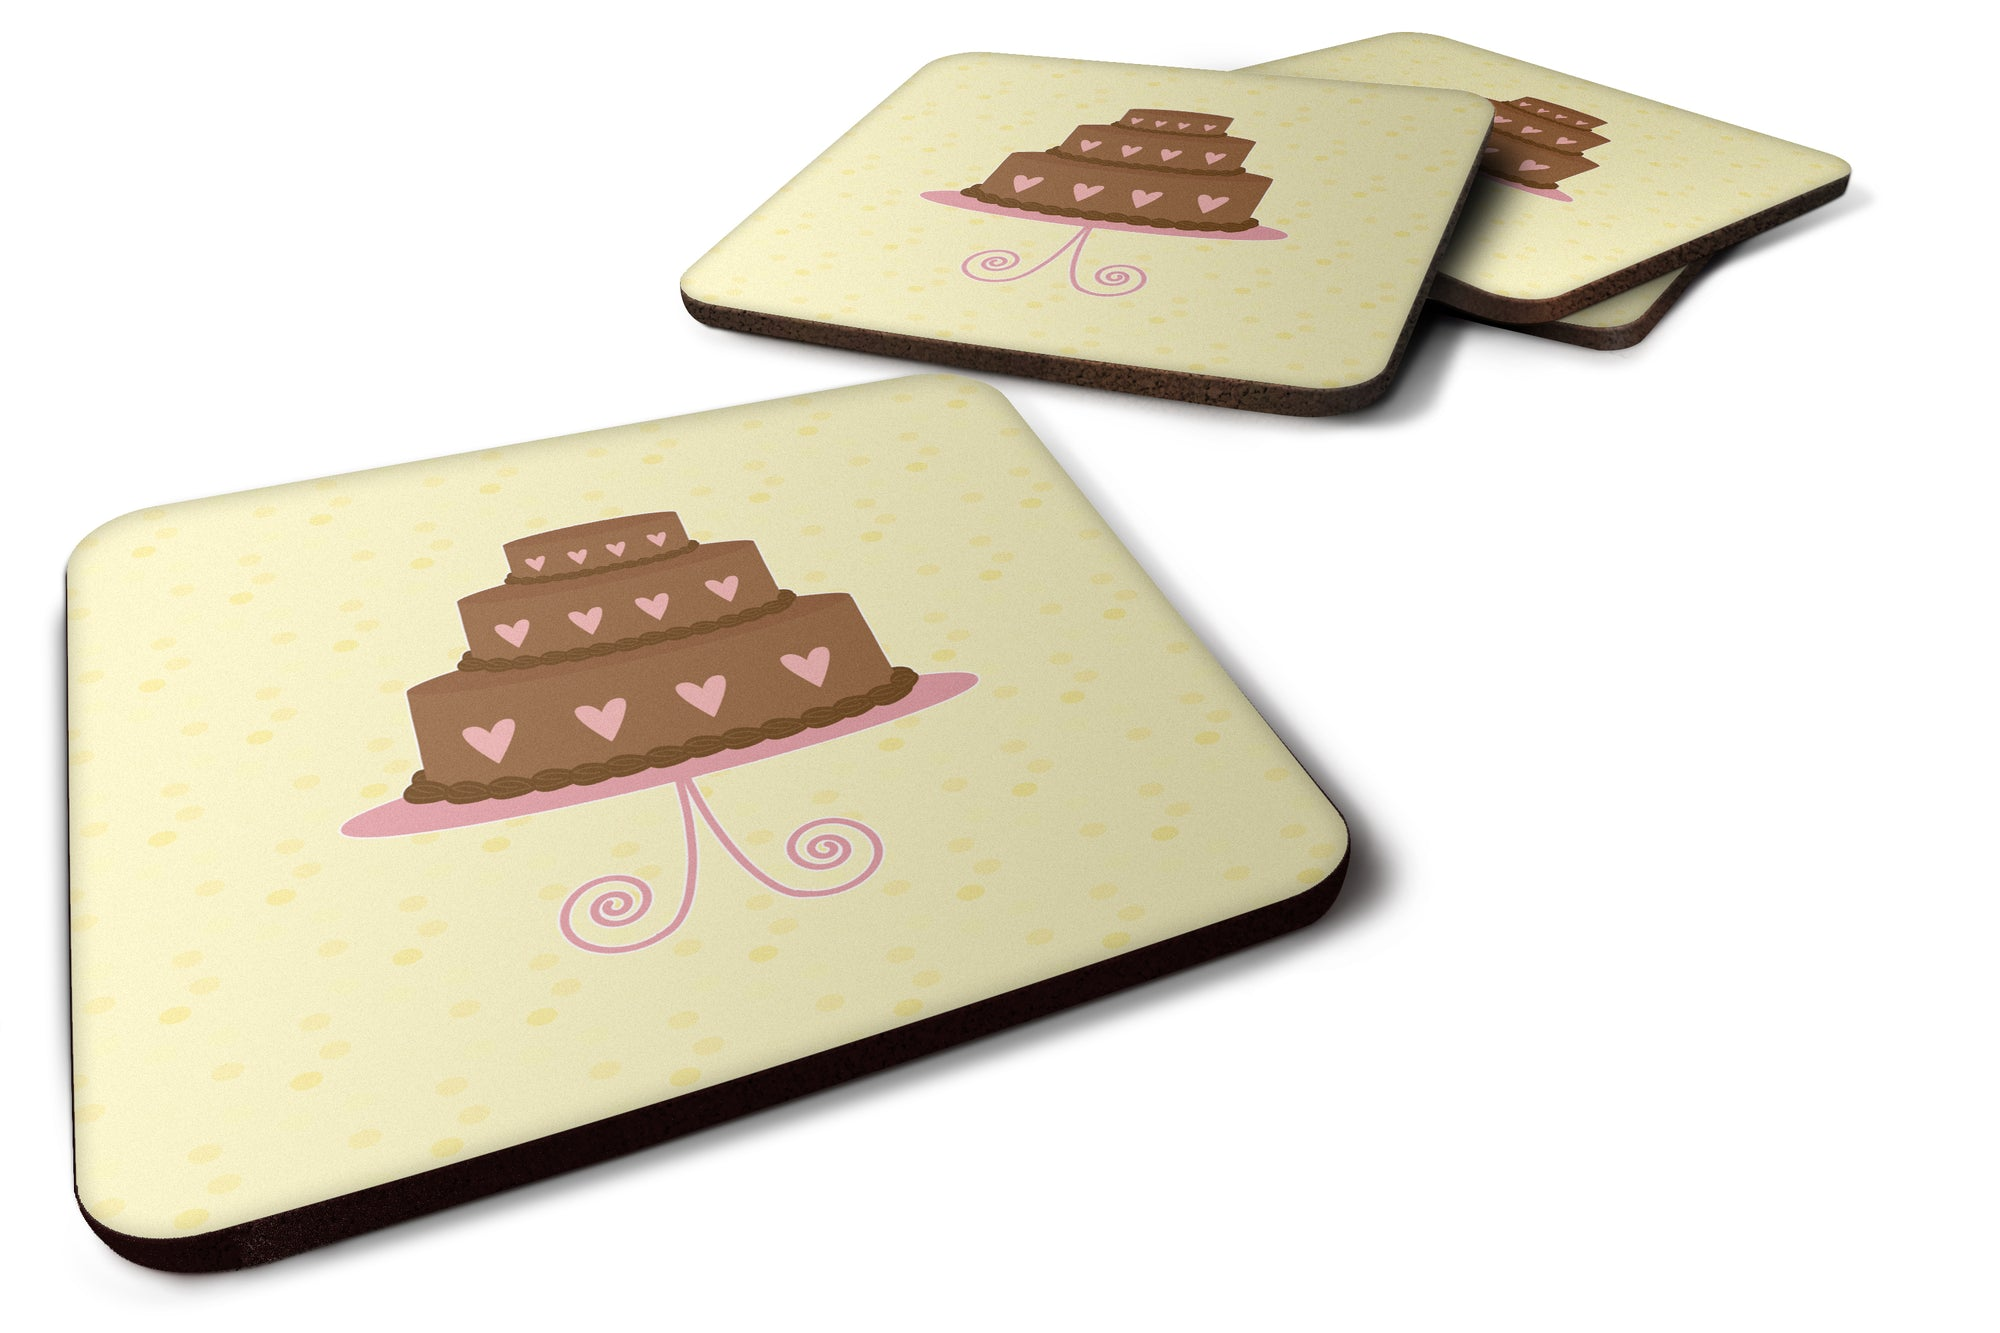 3 Tier Heart Chocolate Cake on Yellow Foam Coaster Set of 4 BB7288FC by Caroline's Treasures